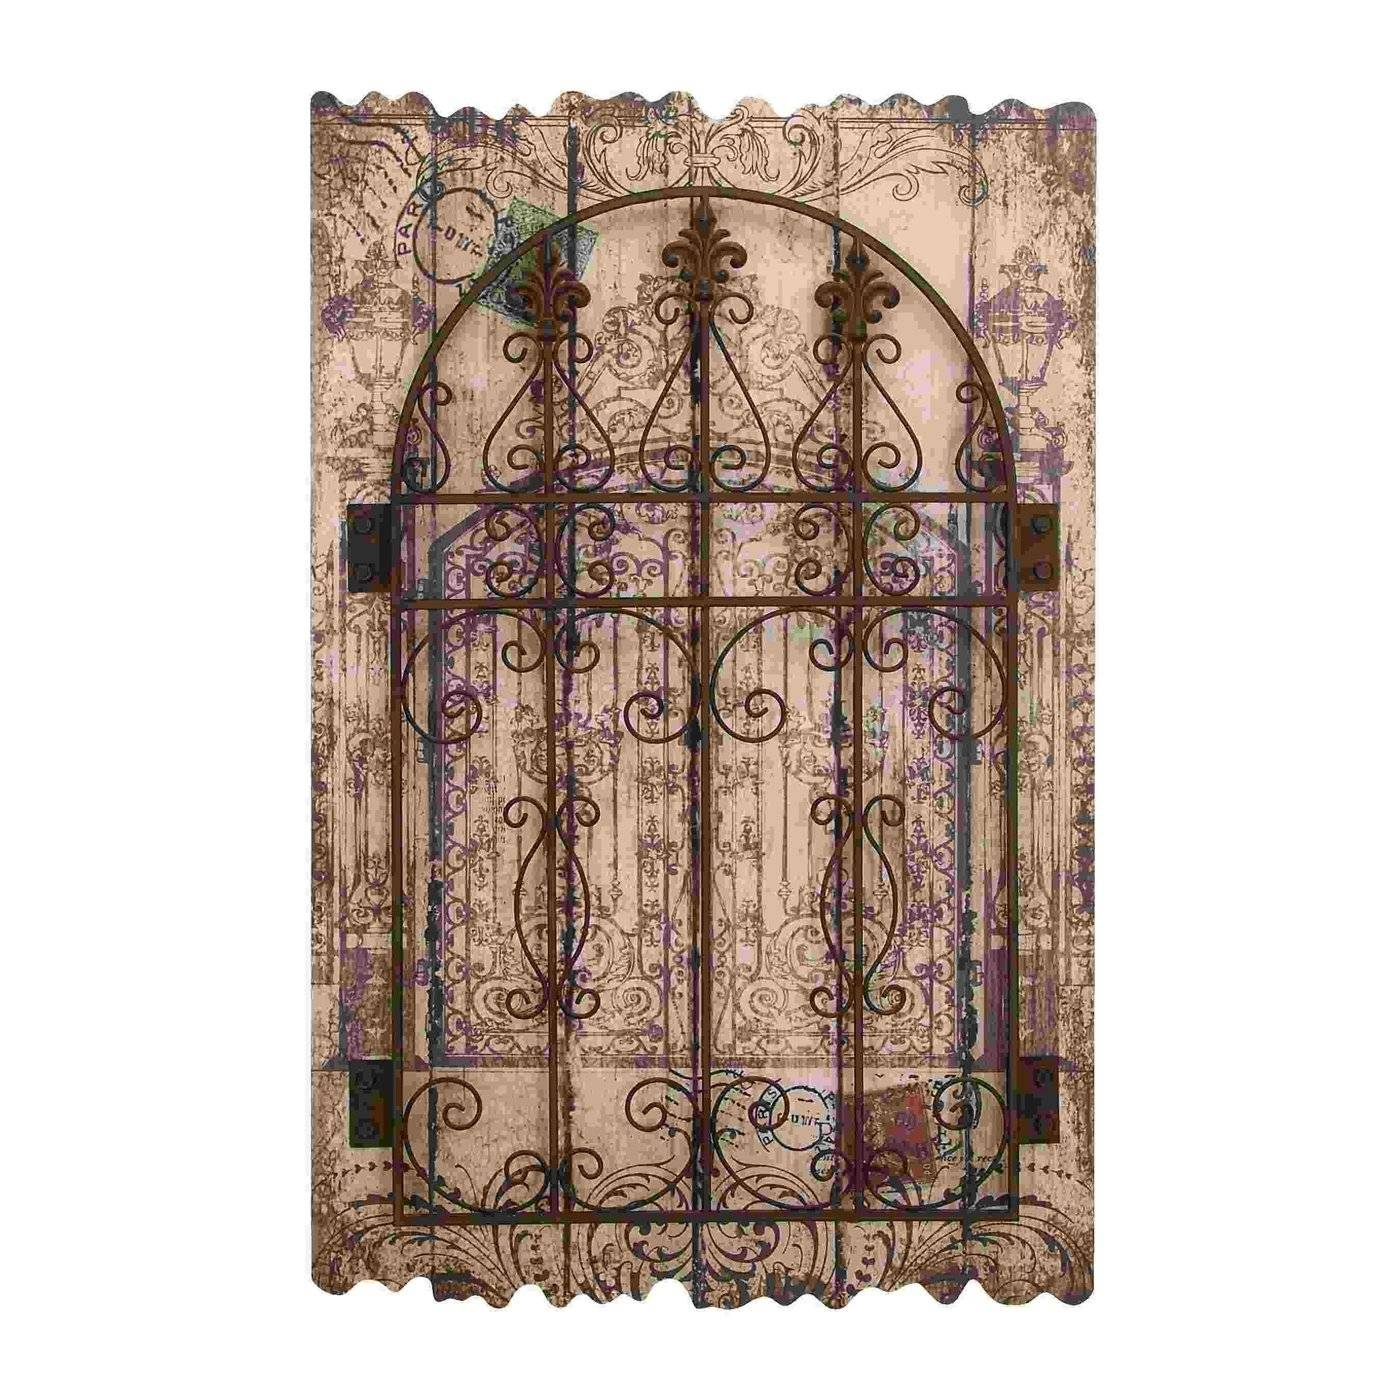 Wall Art Designs: Rustic Wood And Metal Wall Art Transitional In Latest Mediterranean Metal Wall Art (View 2 of 20)